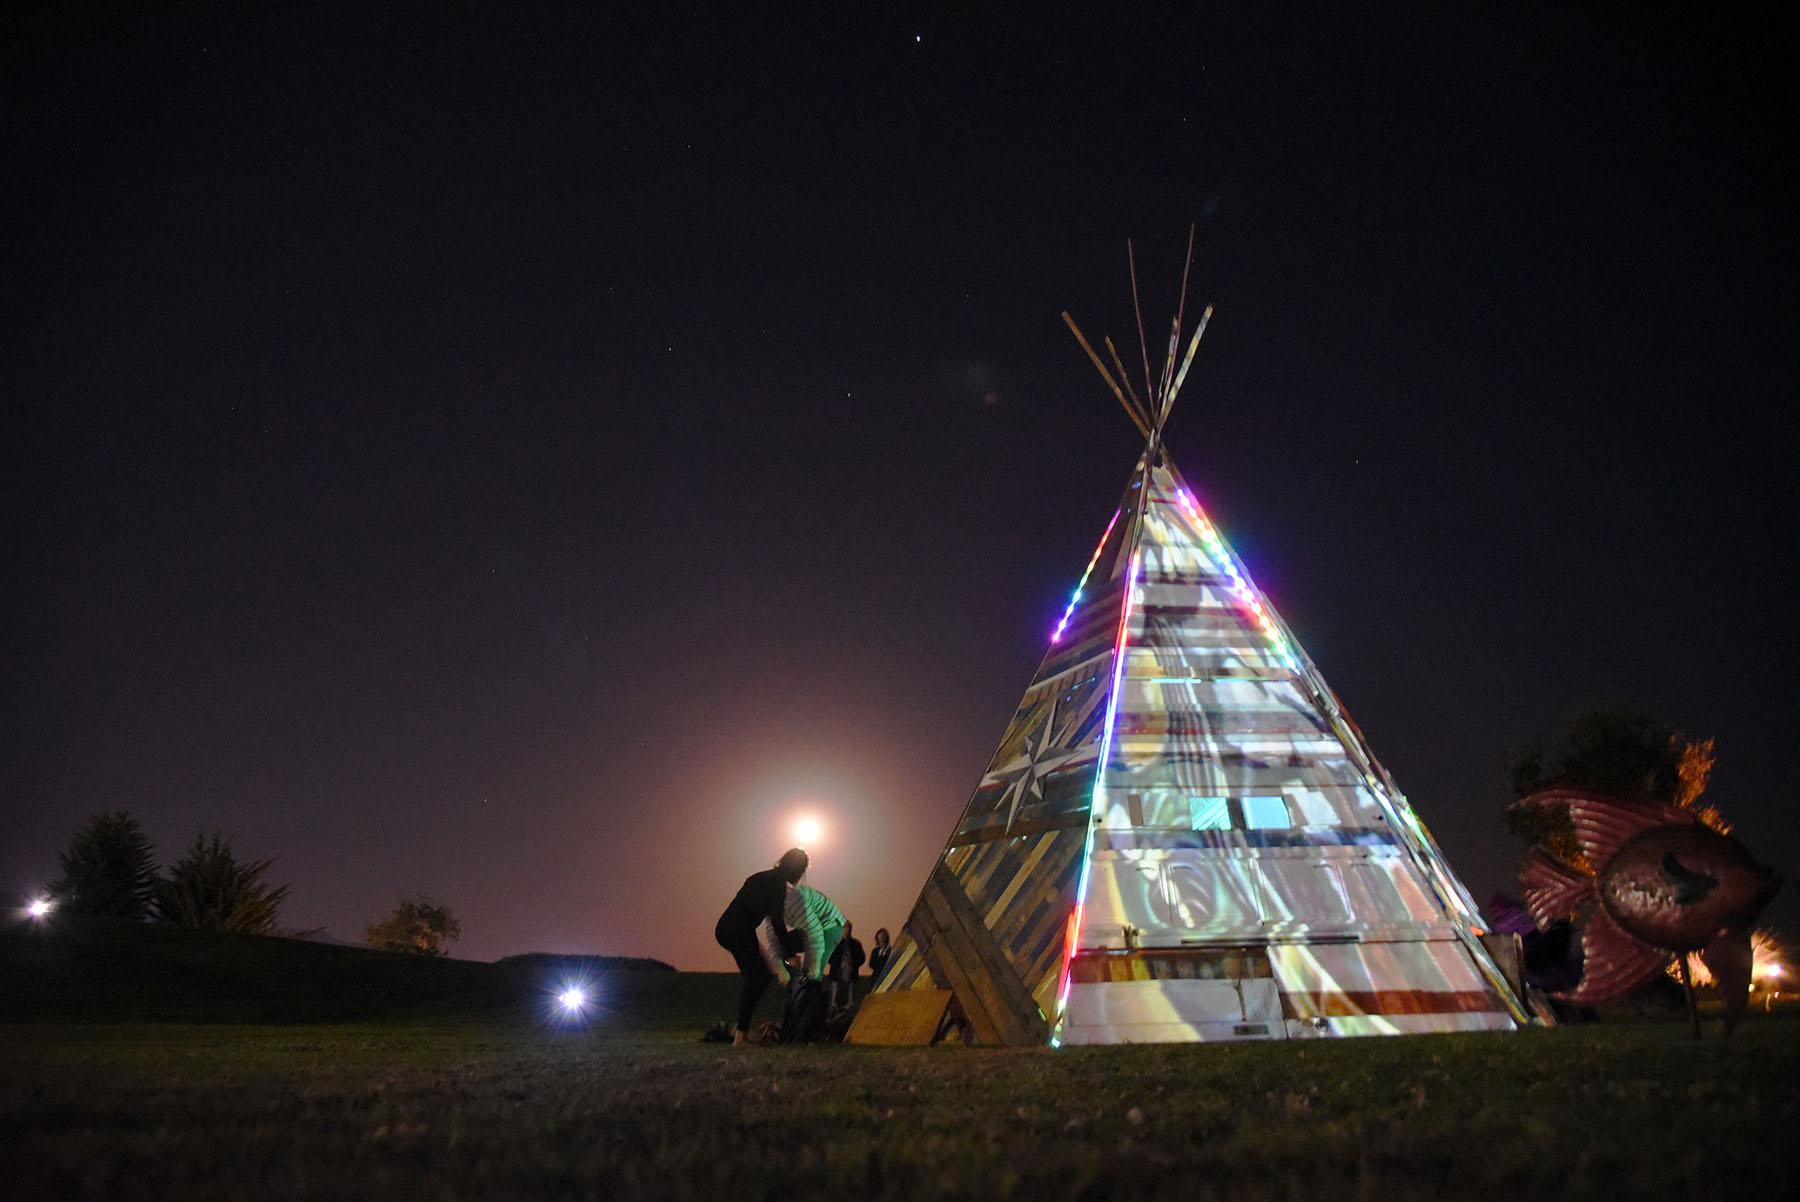 A teepee that was built on West Campus angered Native American students, Thursday, March 5, at City College in Santa Barbara.  The teepee was taken down days later after a meeting between the artists, City College administrators and Native American representatives.